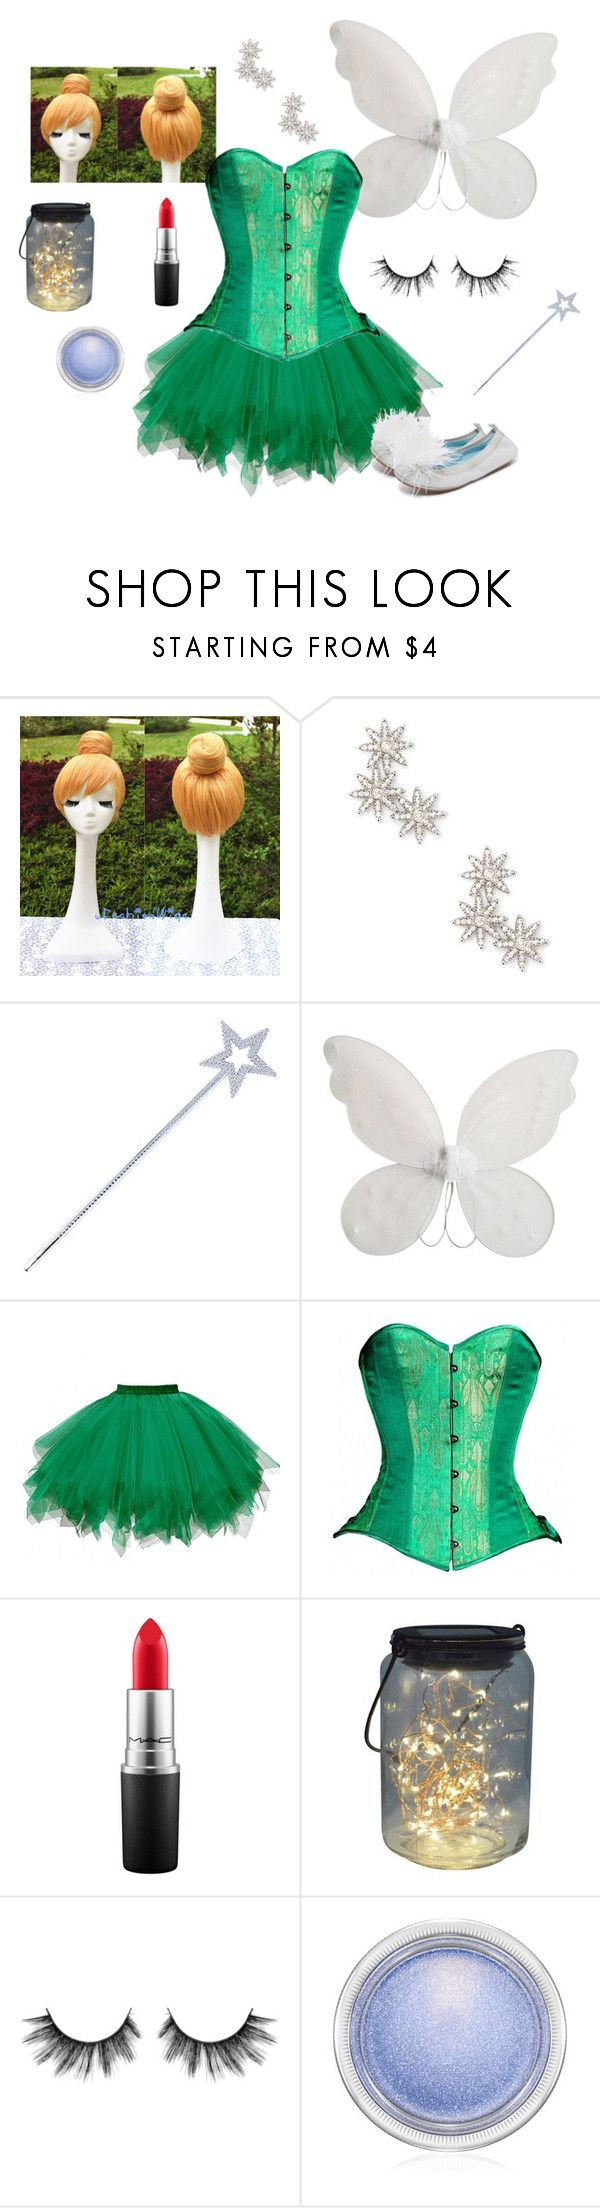 """""""Tinkerbell Halloween Costume"""" by timeless-trends on Polyvore featuring Sole Society, Circo, MAC Cosmetics, Yosi Samra, Halloween, costumeideas and timelesstrends"""